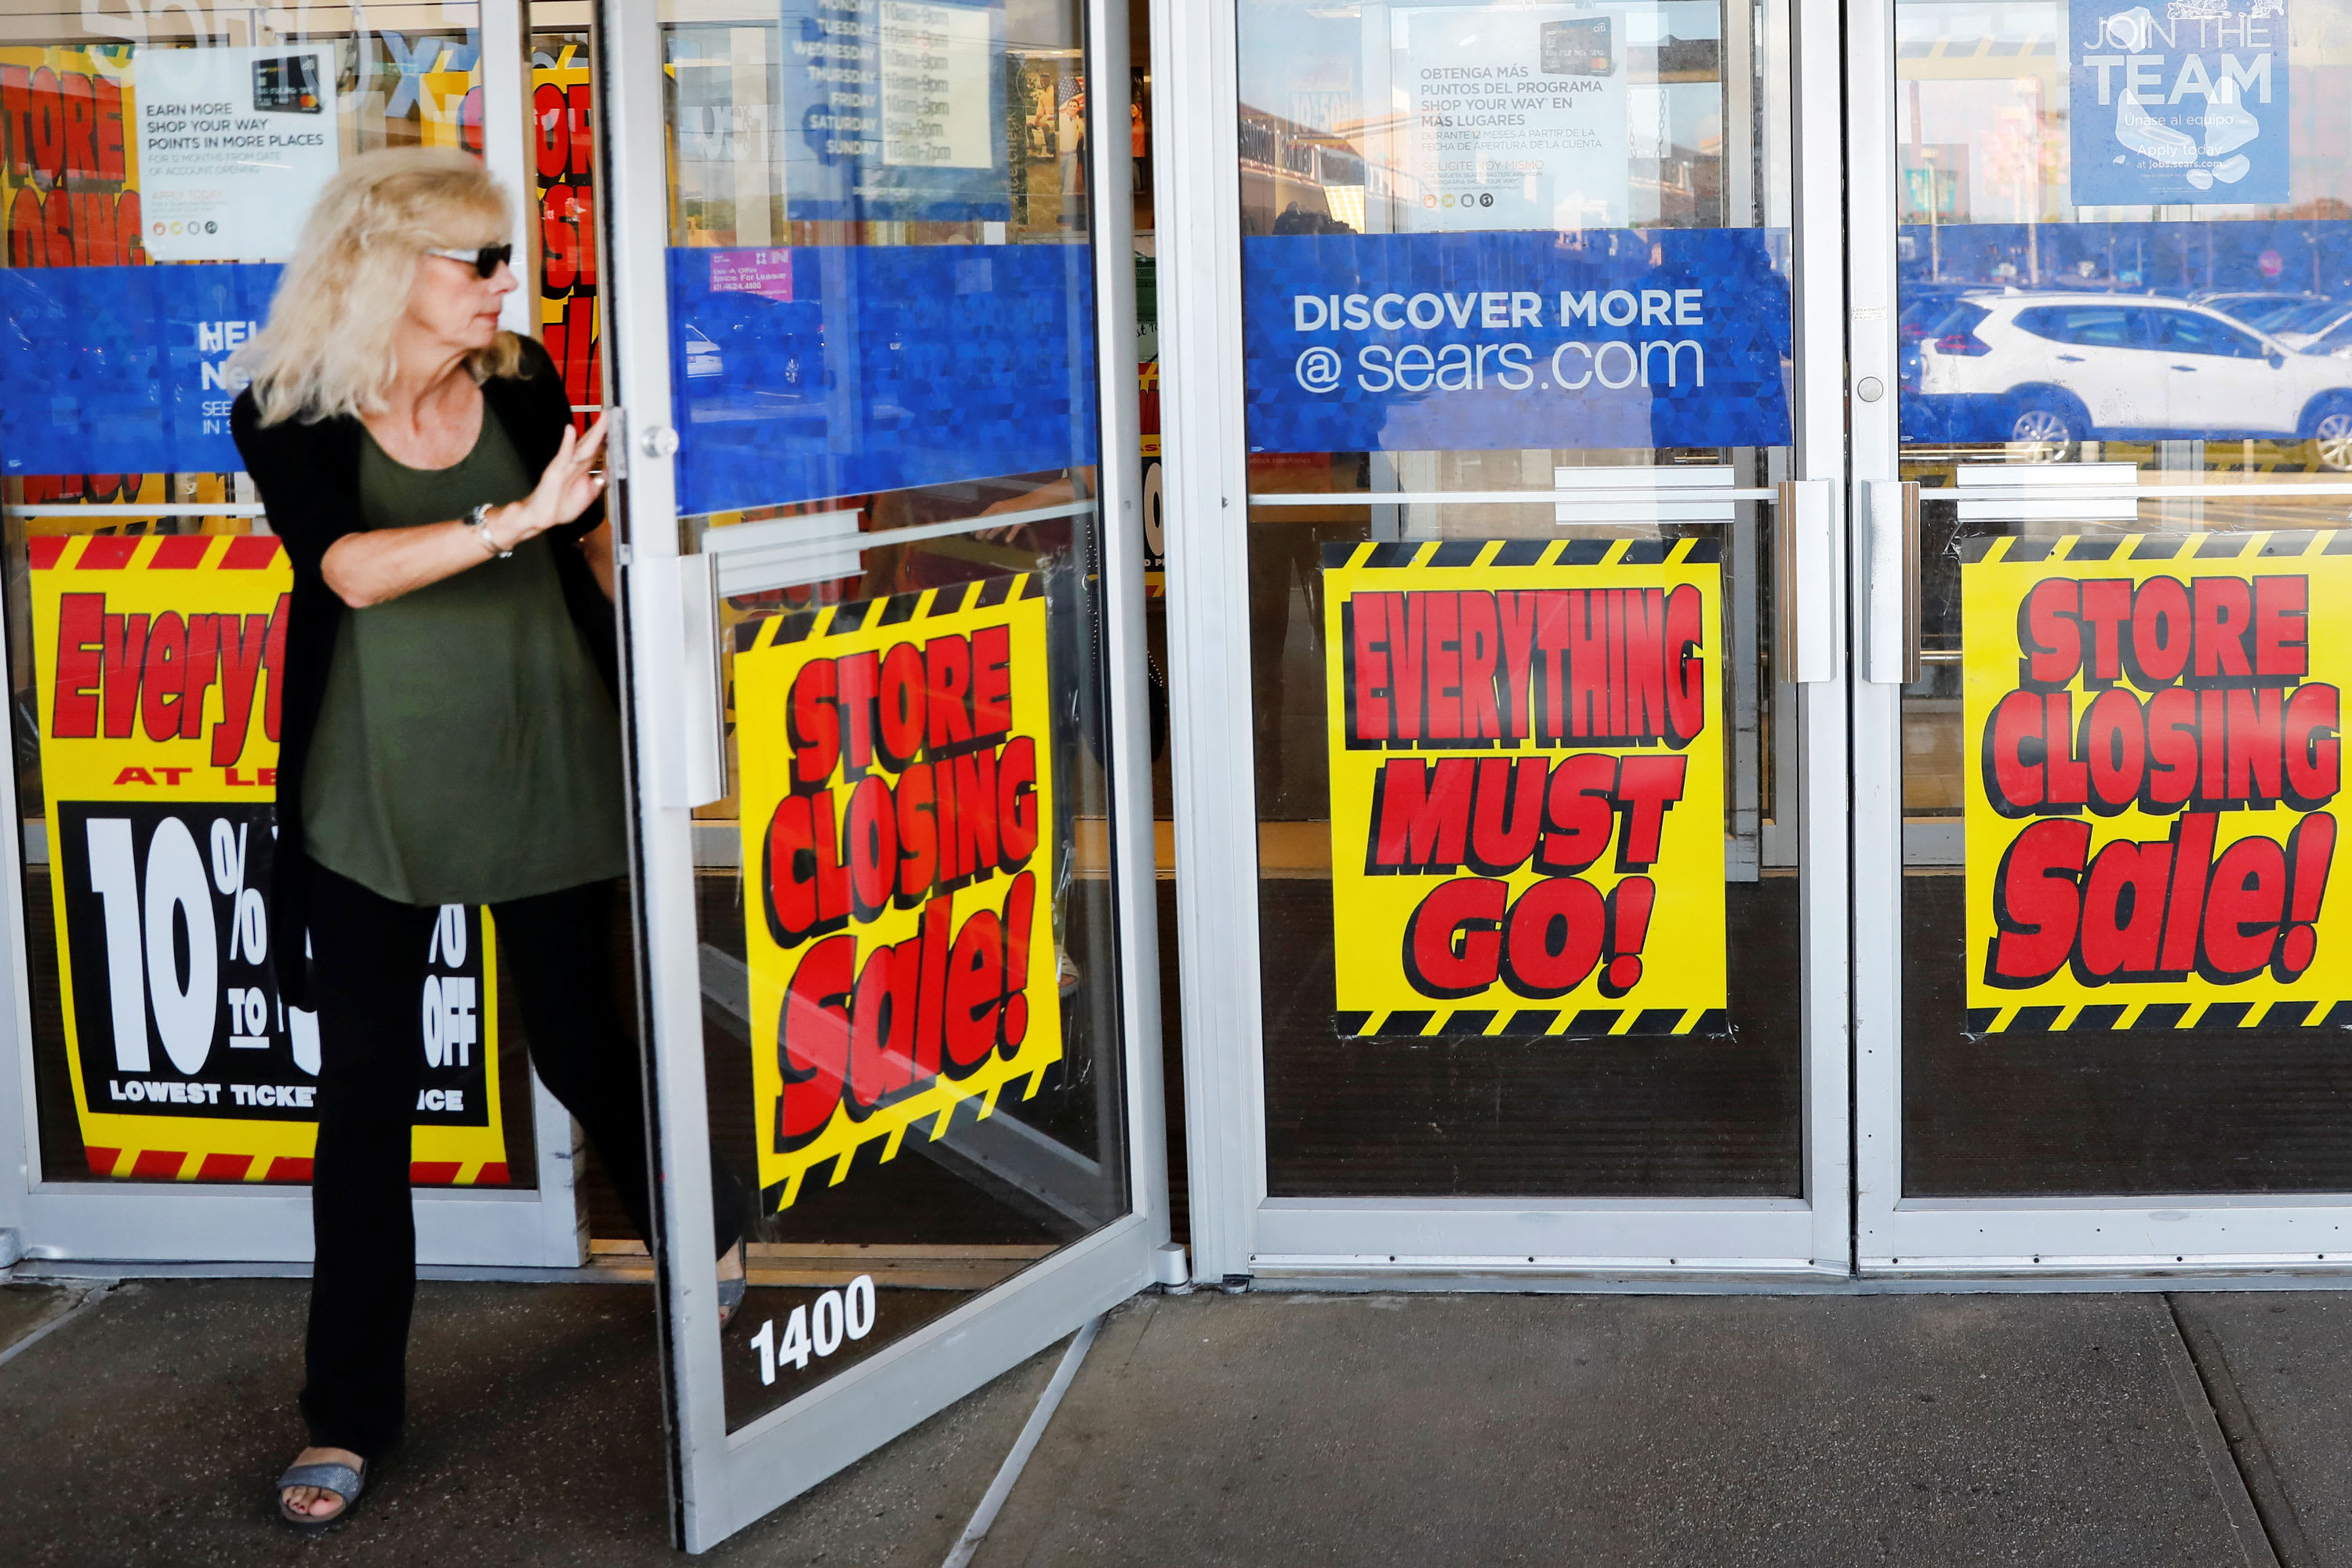 More broken promises at Sears as layoffs and store closures top original projections